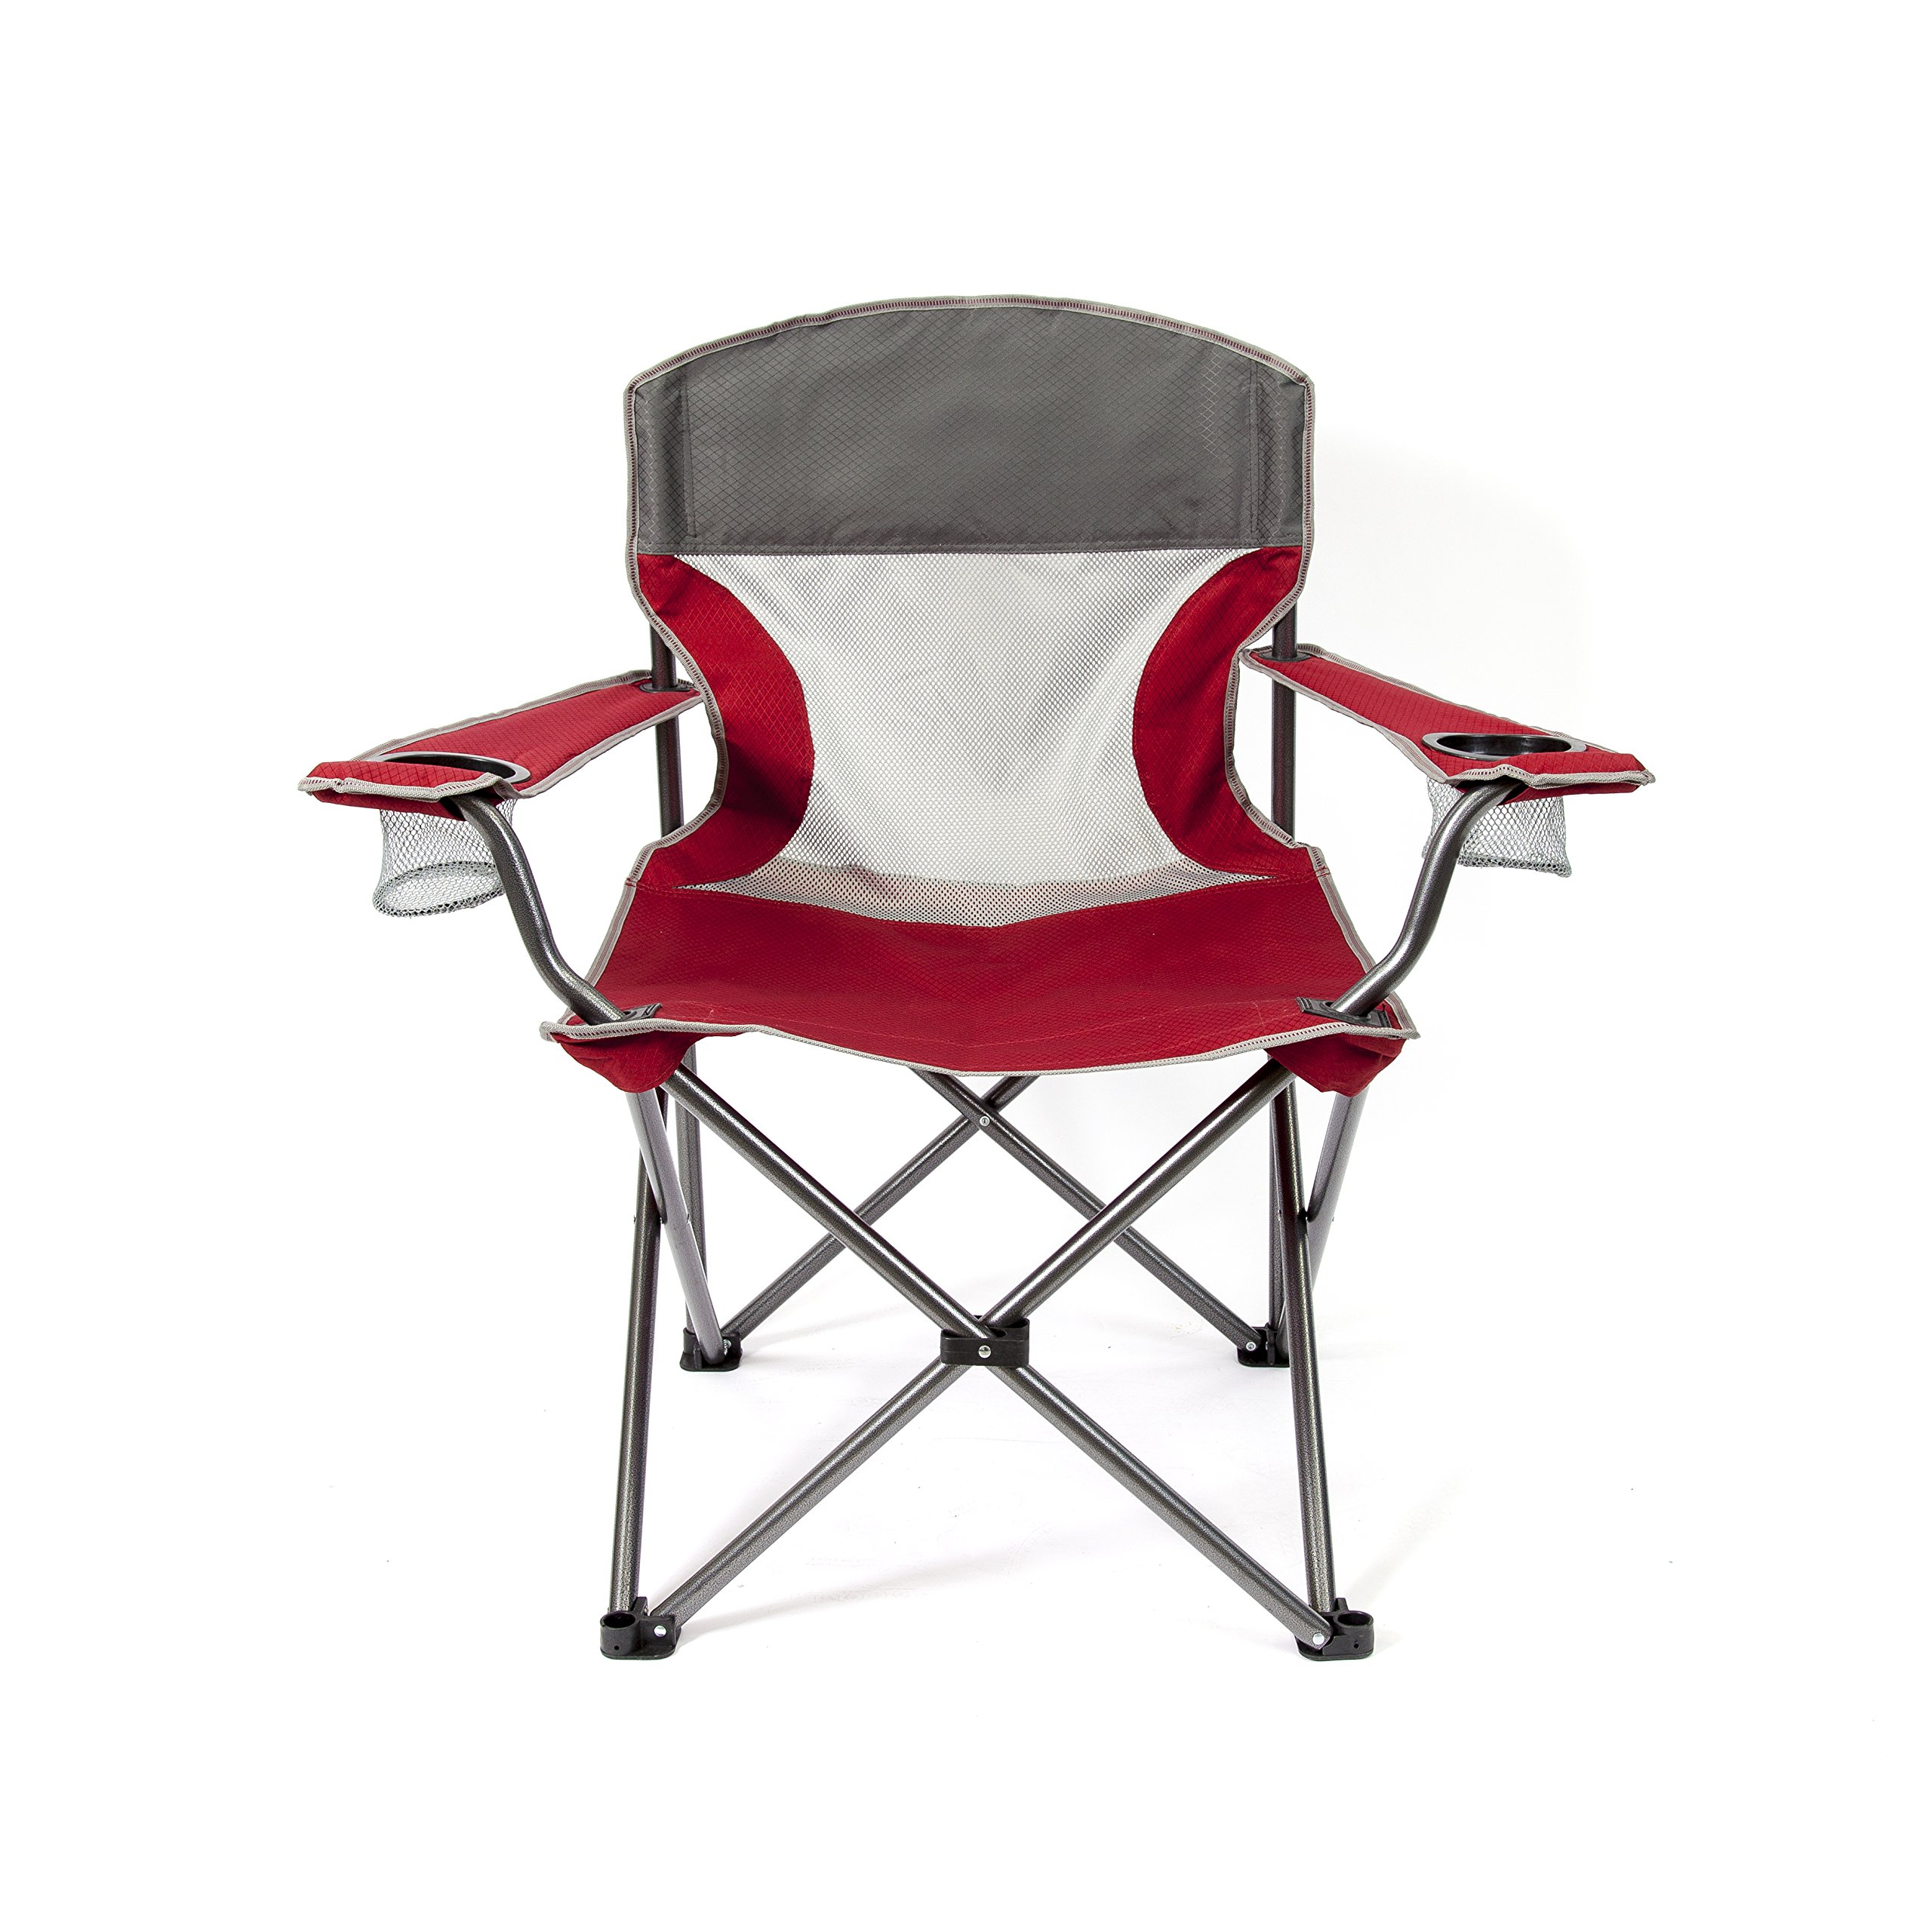 Mac Sports TBBM-109 Big Comfort XL Folding Quad Outdoor Camp Chair with Carry Case, Red by Mac Sports